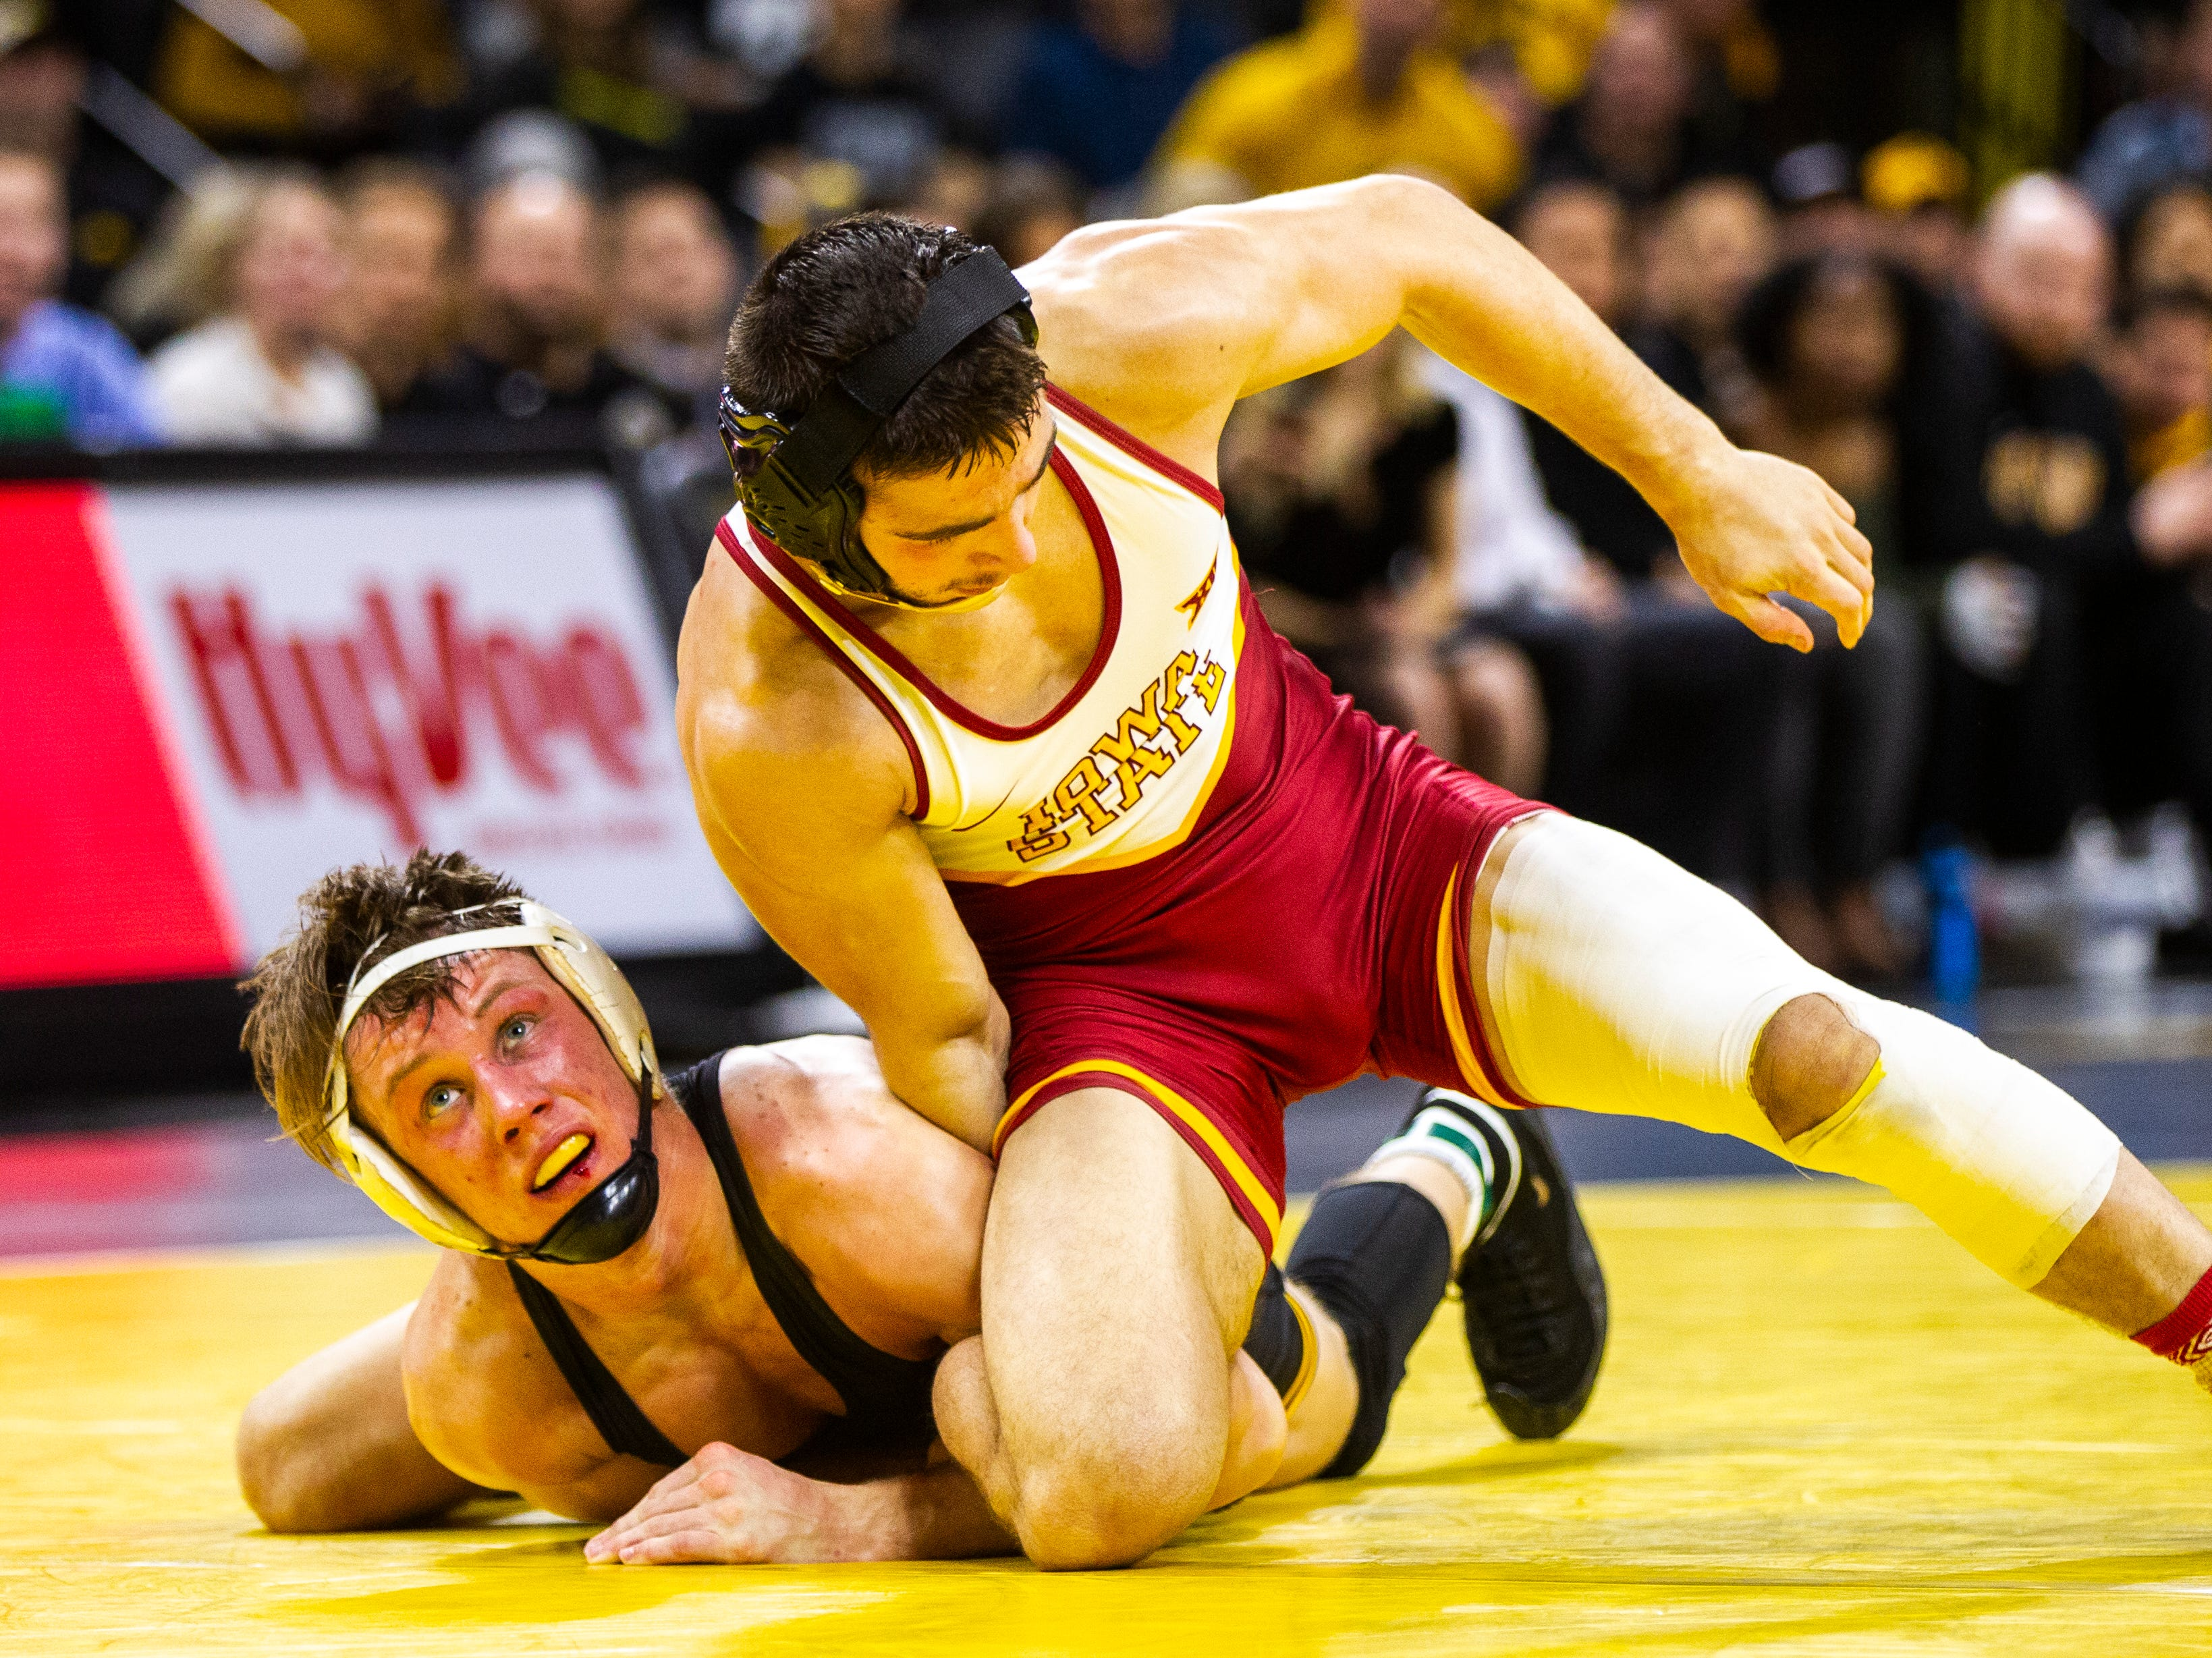 Iowa's Max Murin, left, wrestles Iowa State's Ian Parker at 141 during a NCAA Cy-Hawk series wrestling dual on Saturday, Dec. 1, 2018, at Carver-Hawkeye Arena in Iowa City.